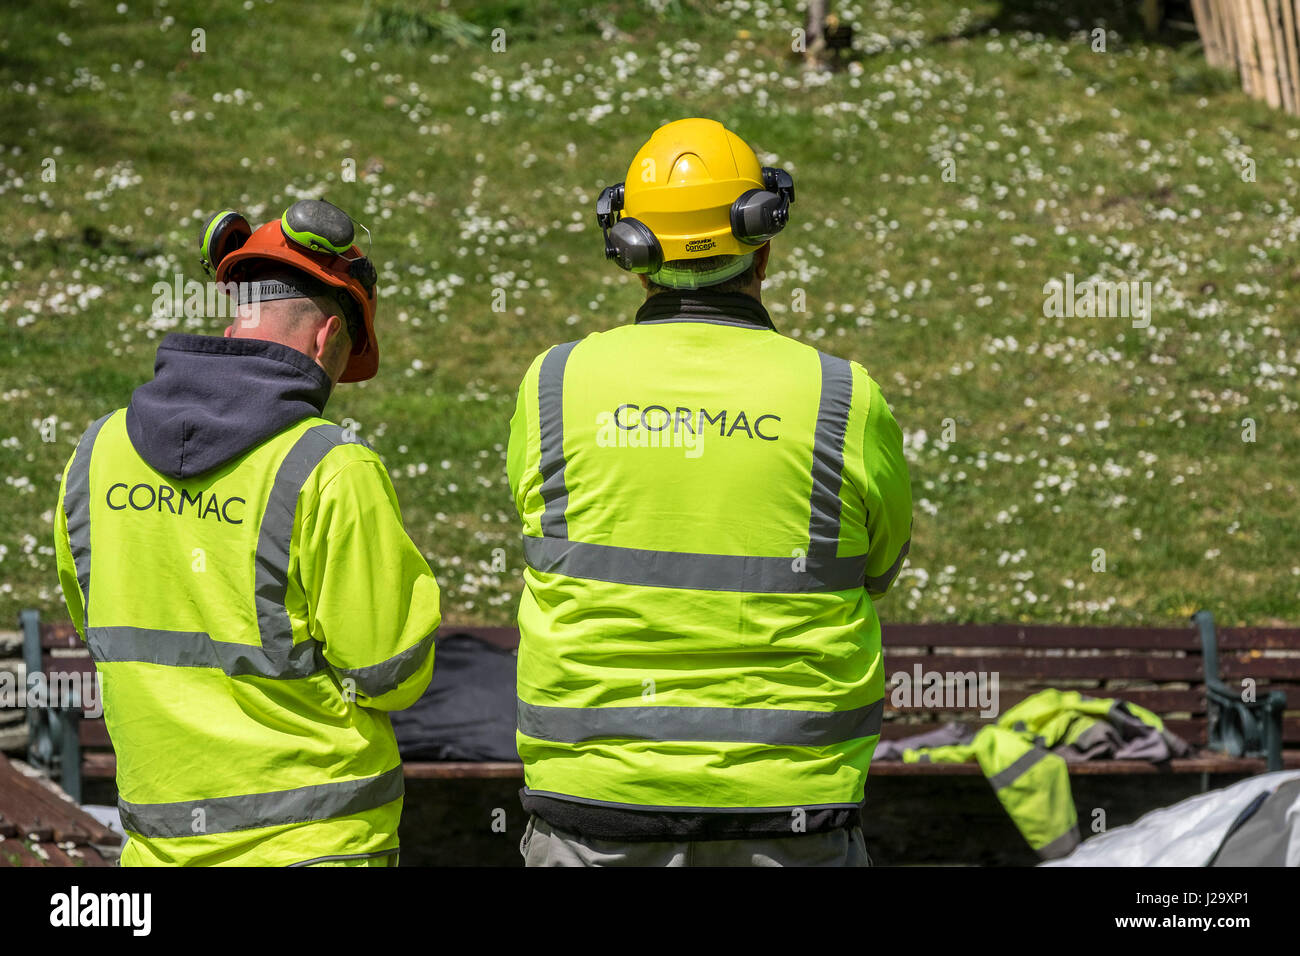 Cormac Workers Safety workwear Protective workwear Arboriculture Team Supervising Outside Hi-viz workwear - Stock Image